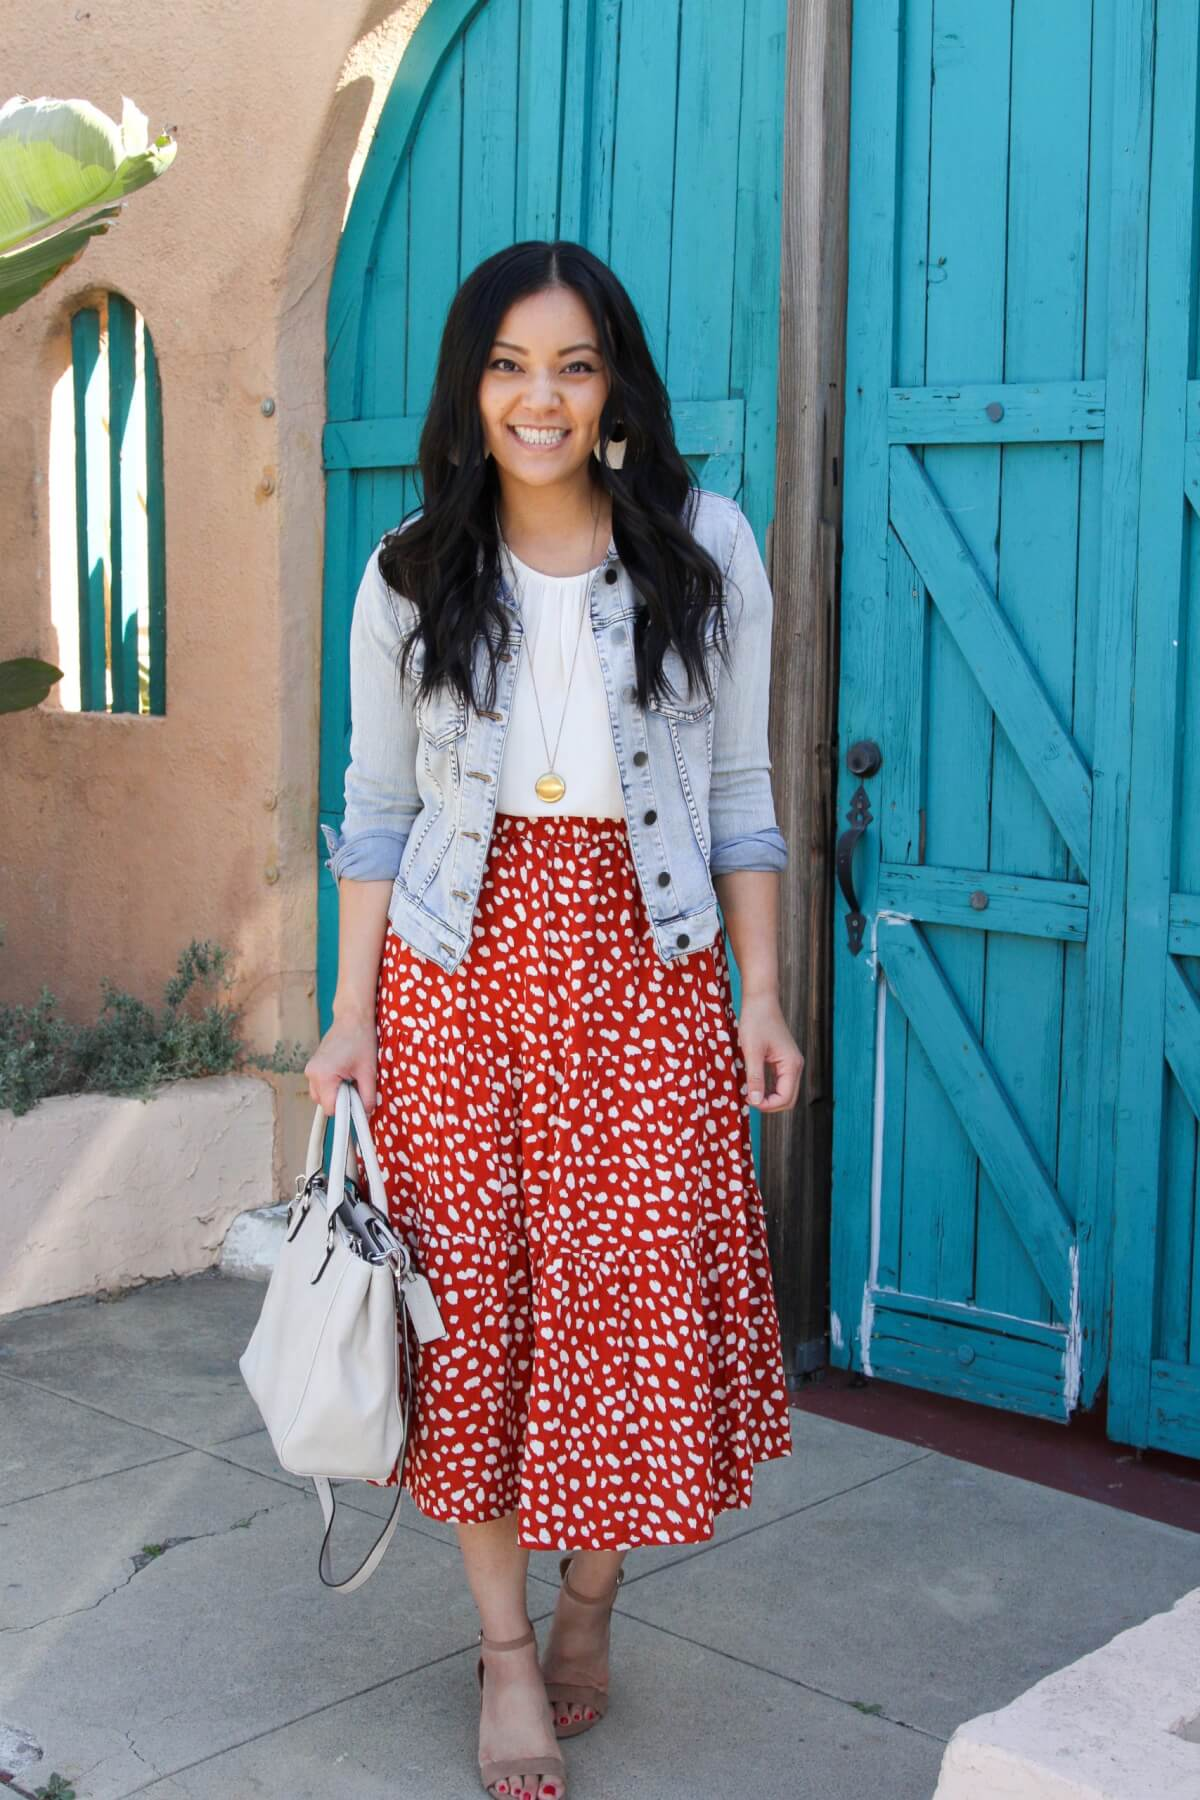 denim jacket outfit: denim jacket + cream top + red and white skirt + nude sandals + pendant necklace + white bag